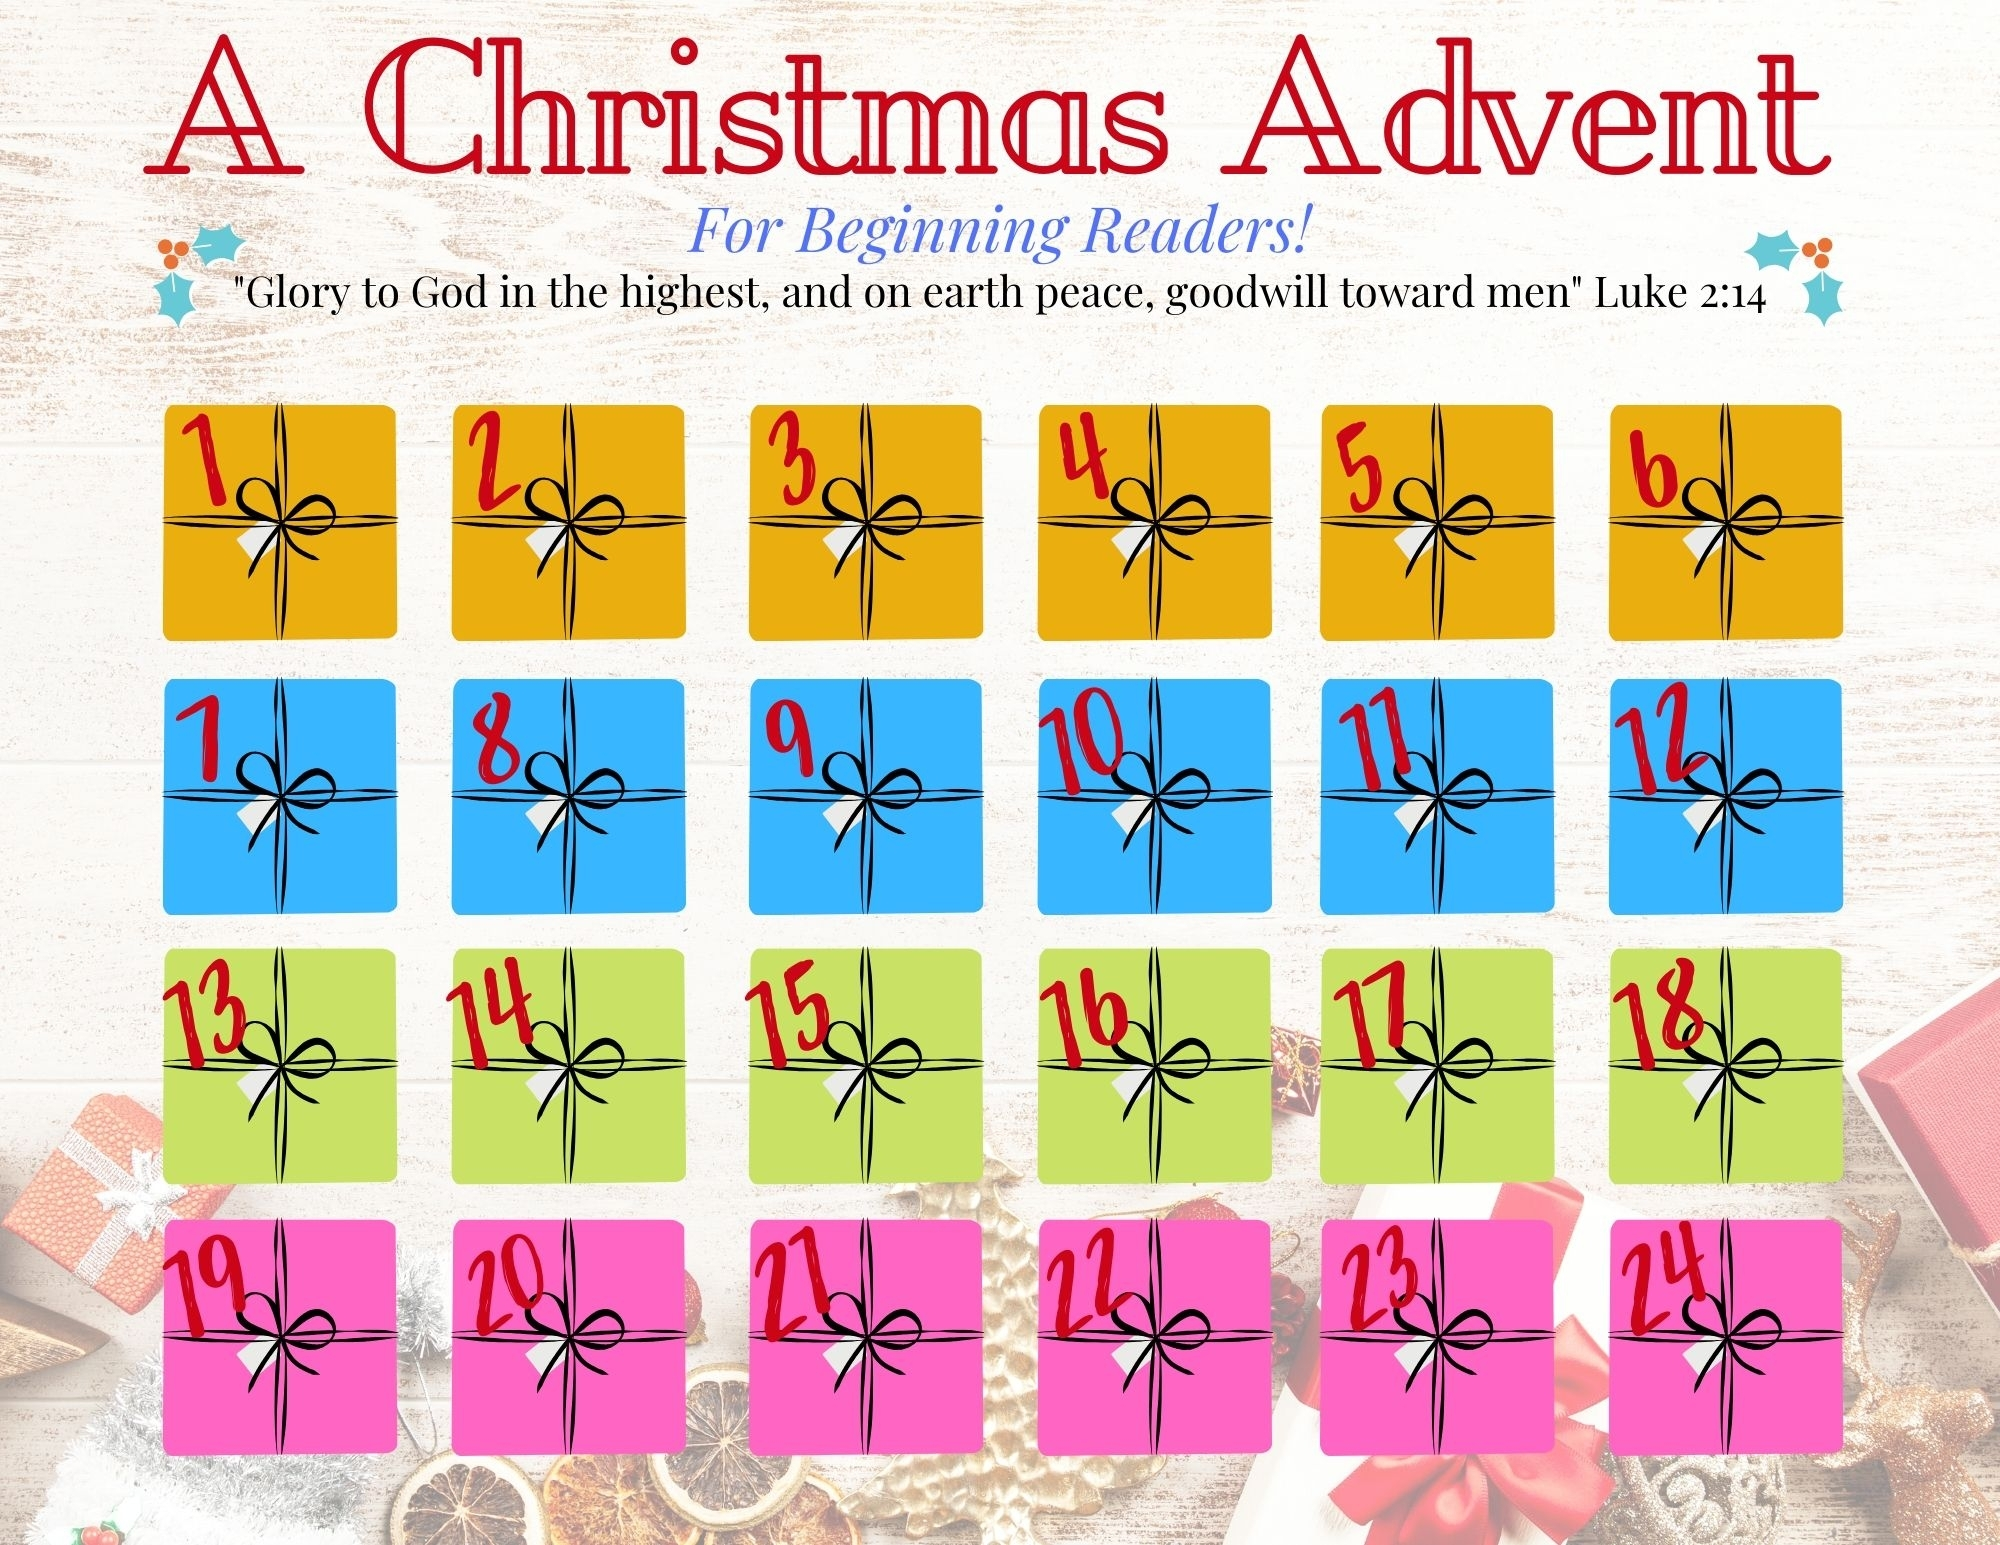 Printable Advent Calendar 2020 - Easy, Scripture-Filled regarding Bible Verse Advent Calendar With Gift Ideas